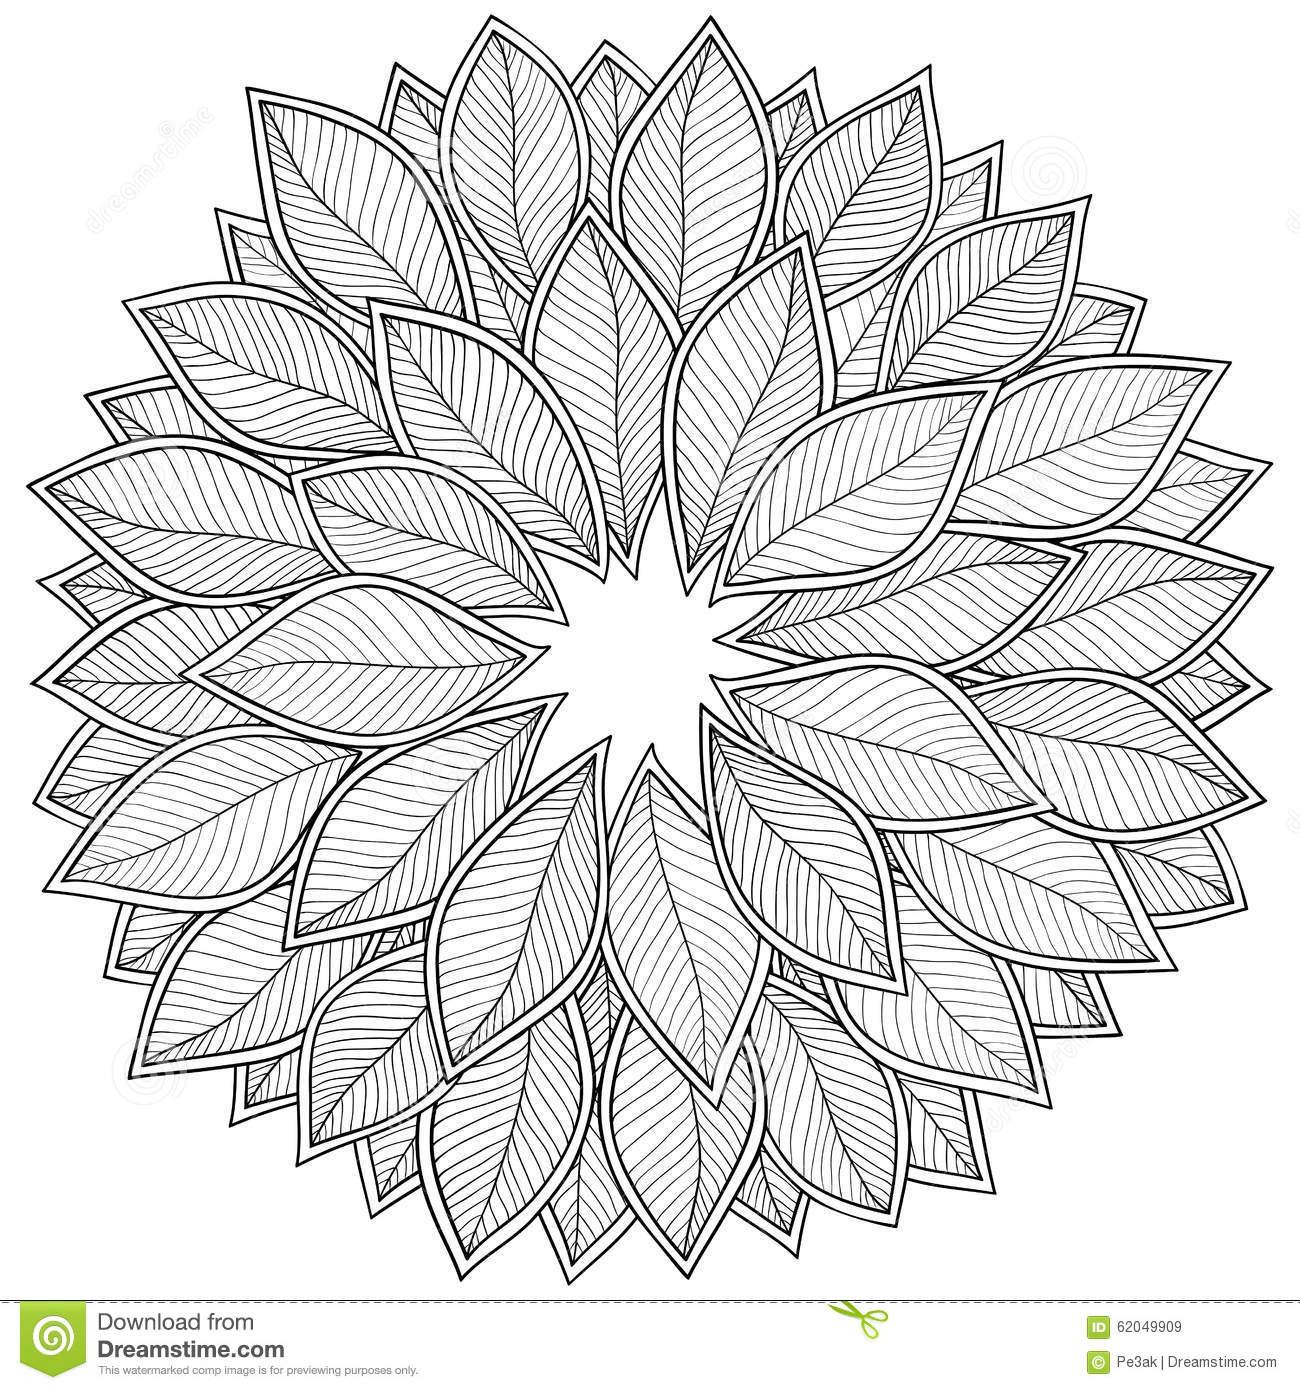 Royalty Free Vector Download Pattern For Coloring Book